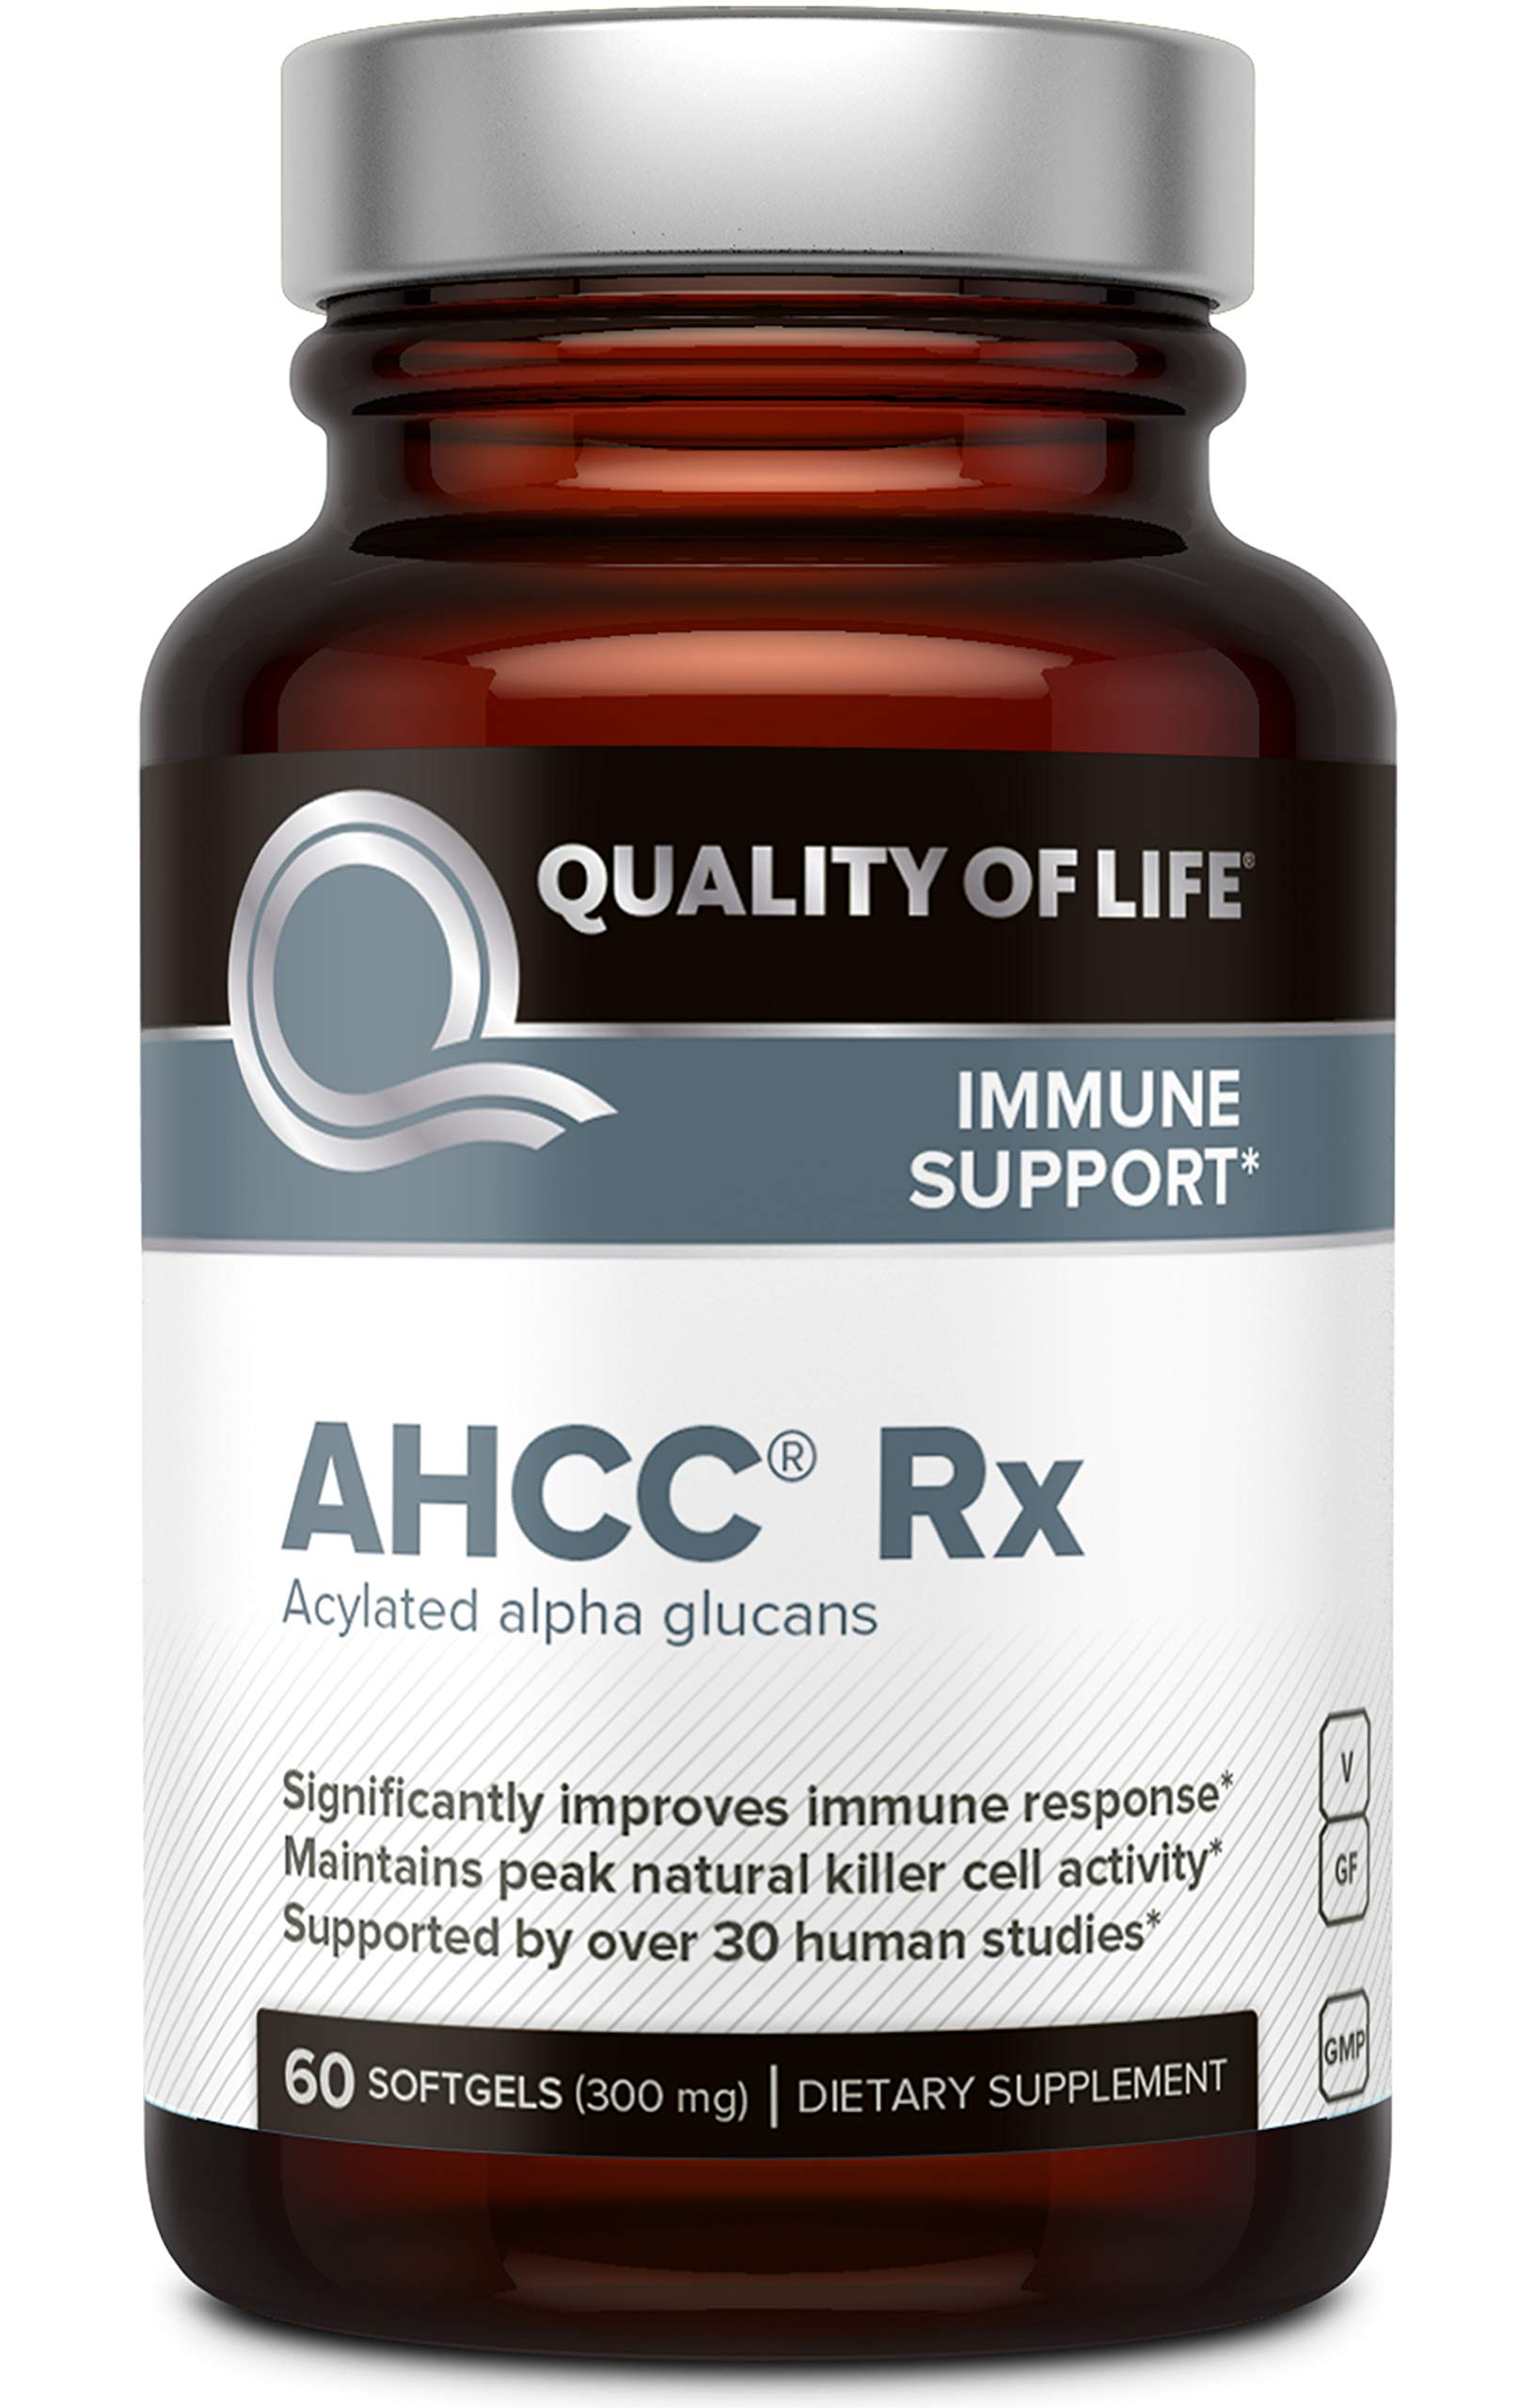 Premium AHCC Immune Support Supplement - Most Bioavaliable AHCC - Natural Mushroom Extract - Quality of Life AHCC Rx-60 Softgels